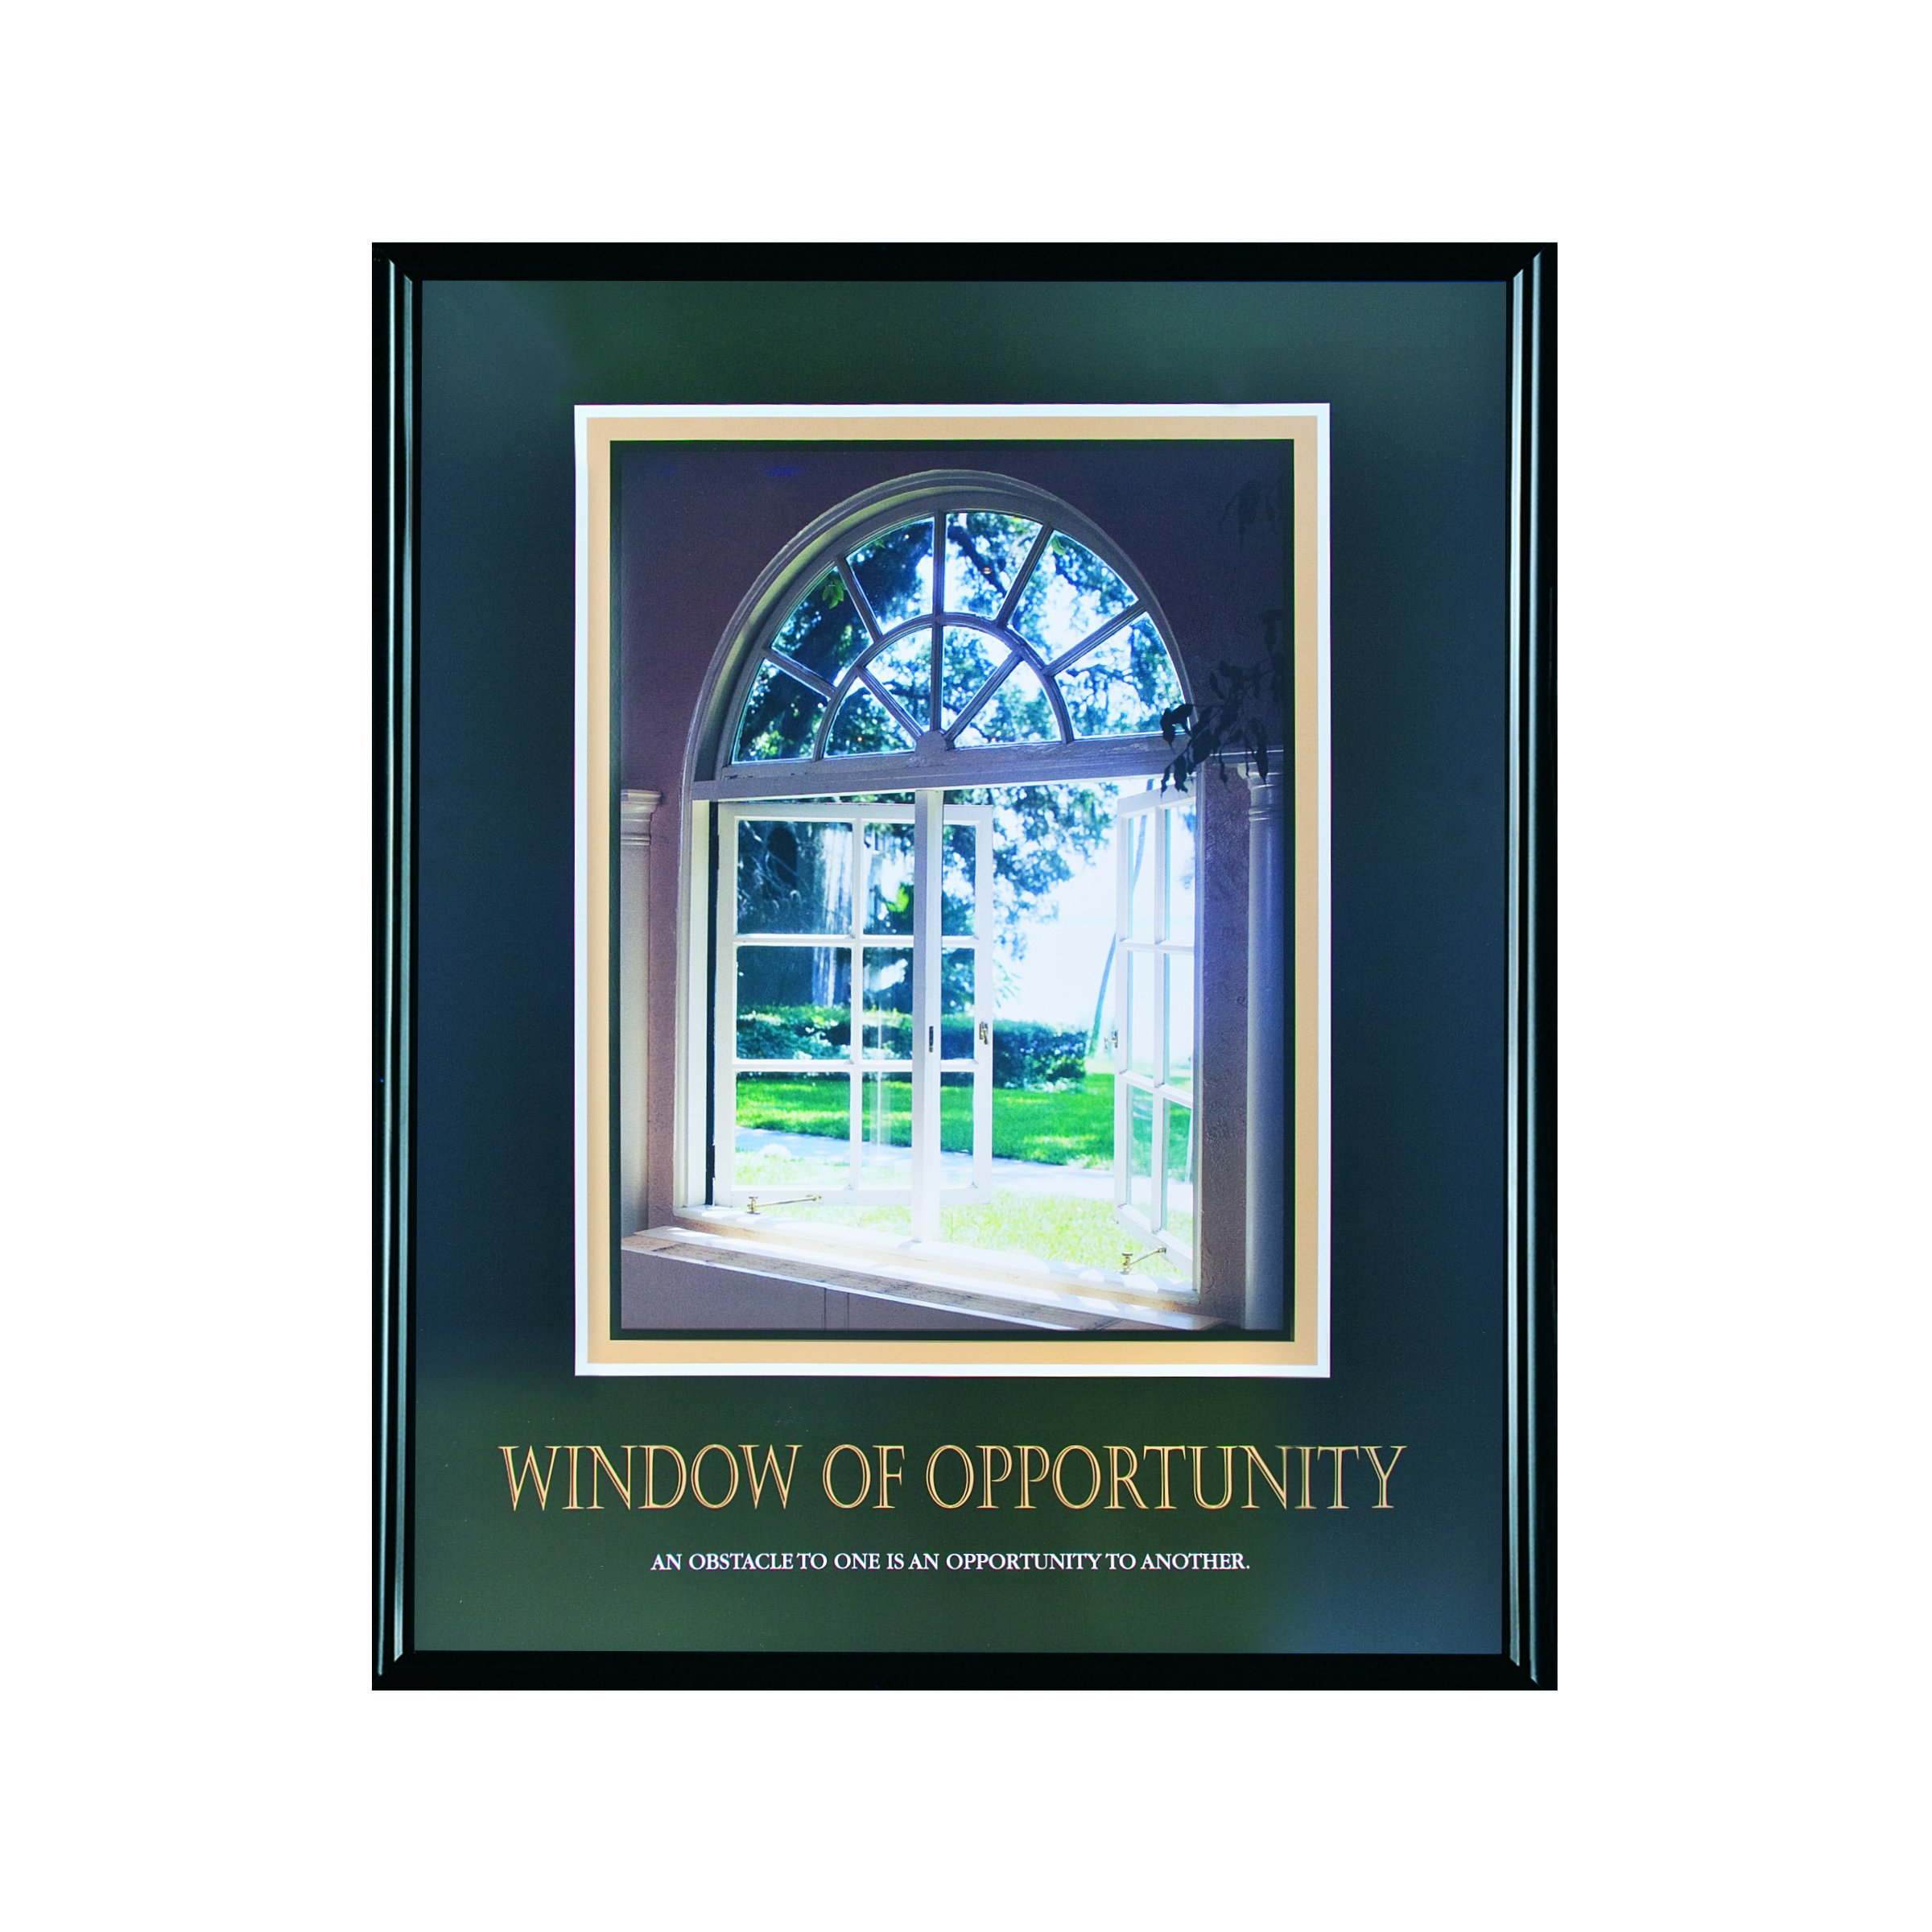 ADVANTUS Framed Motivational Print, Window of Opportunity, 24 x 30 Inches, Black Frame (78078)